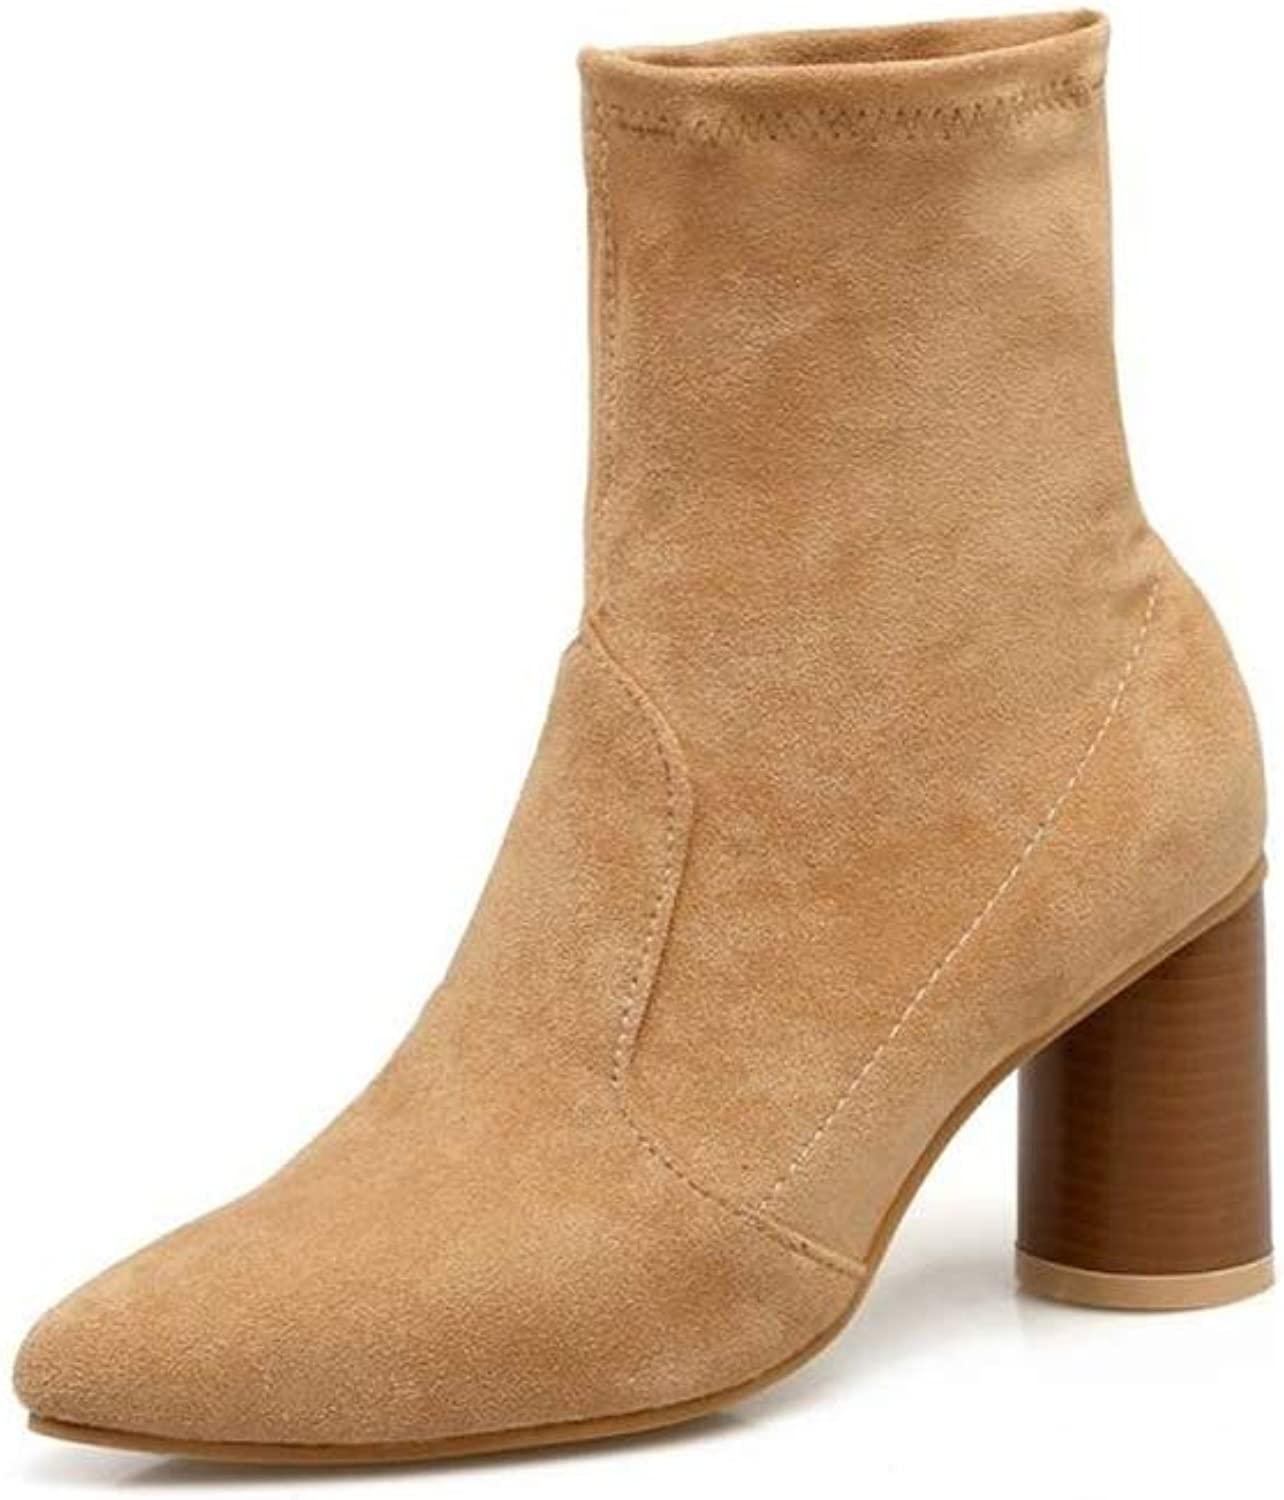 Super explosion Women's Pointed Toe Soft Stretch Sock Style Chunky Block Heel Ankle Bootie